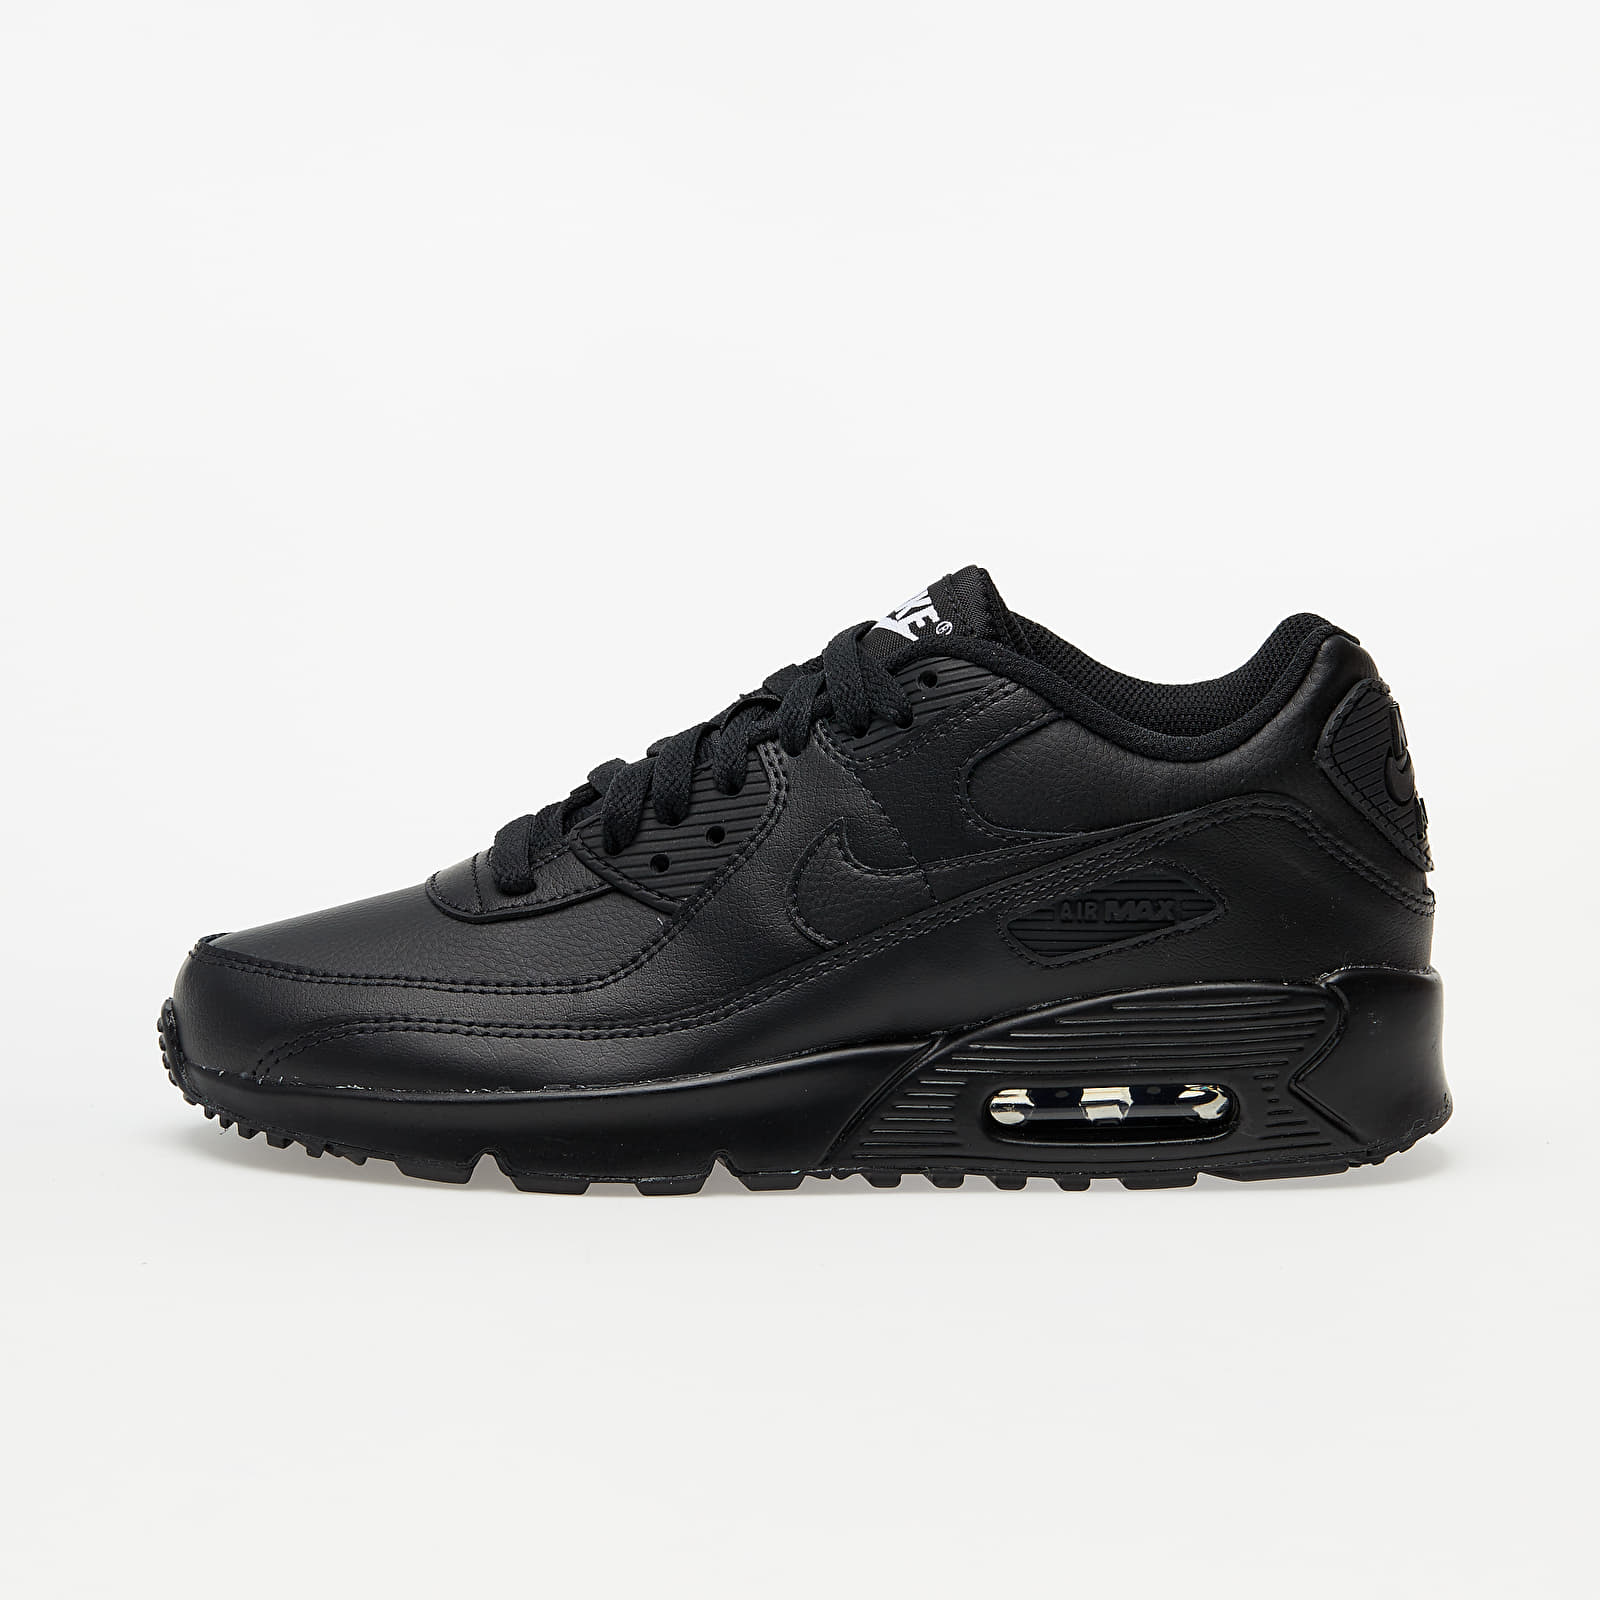 Chaussures et baskets enfants Nike Air Max 90 Leather (GS) Black/ Black-Black-White